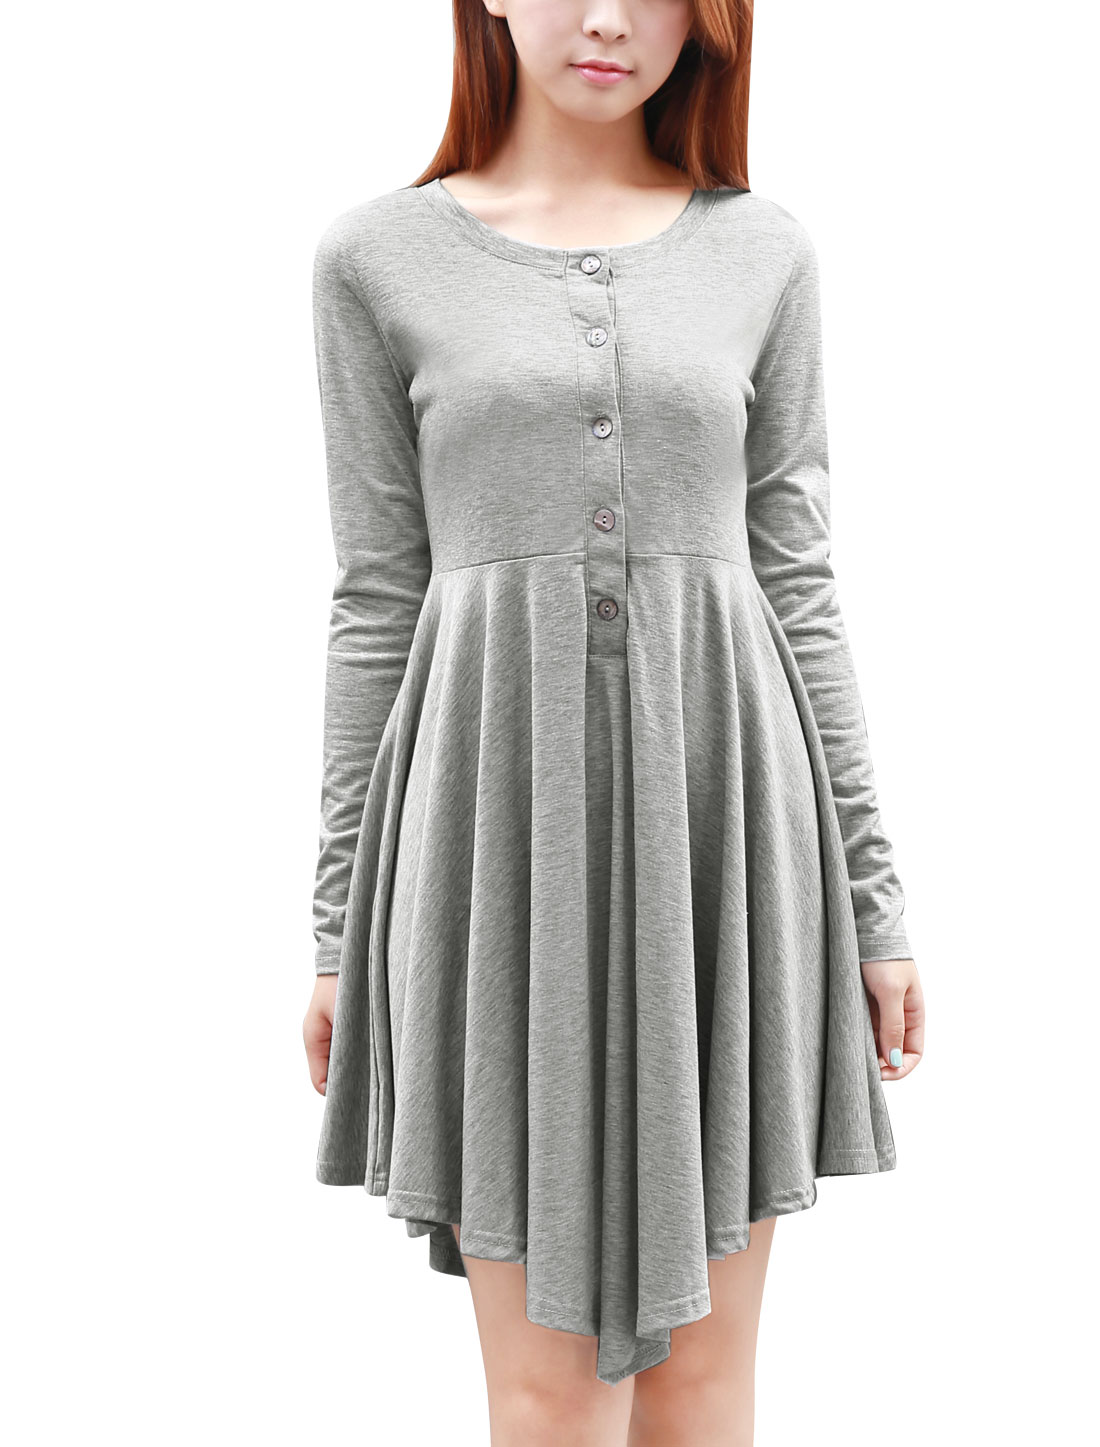 Women Buttons Closed Front Long-Sleeved Cozy Fit A Line Dress Gray S